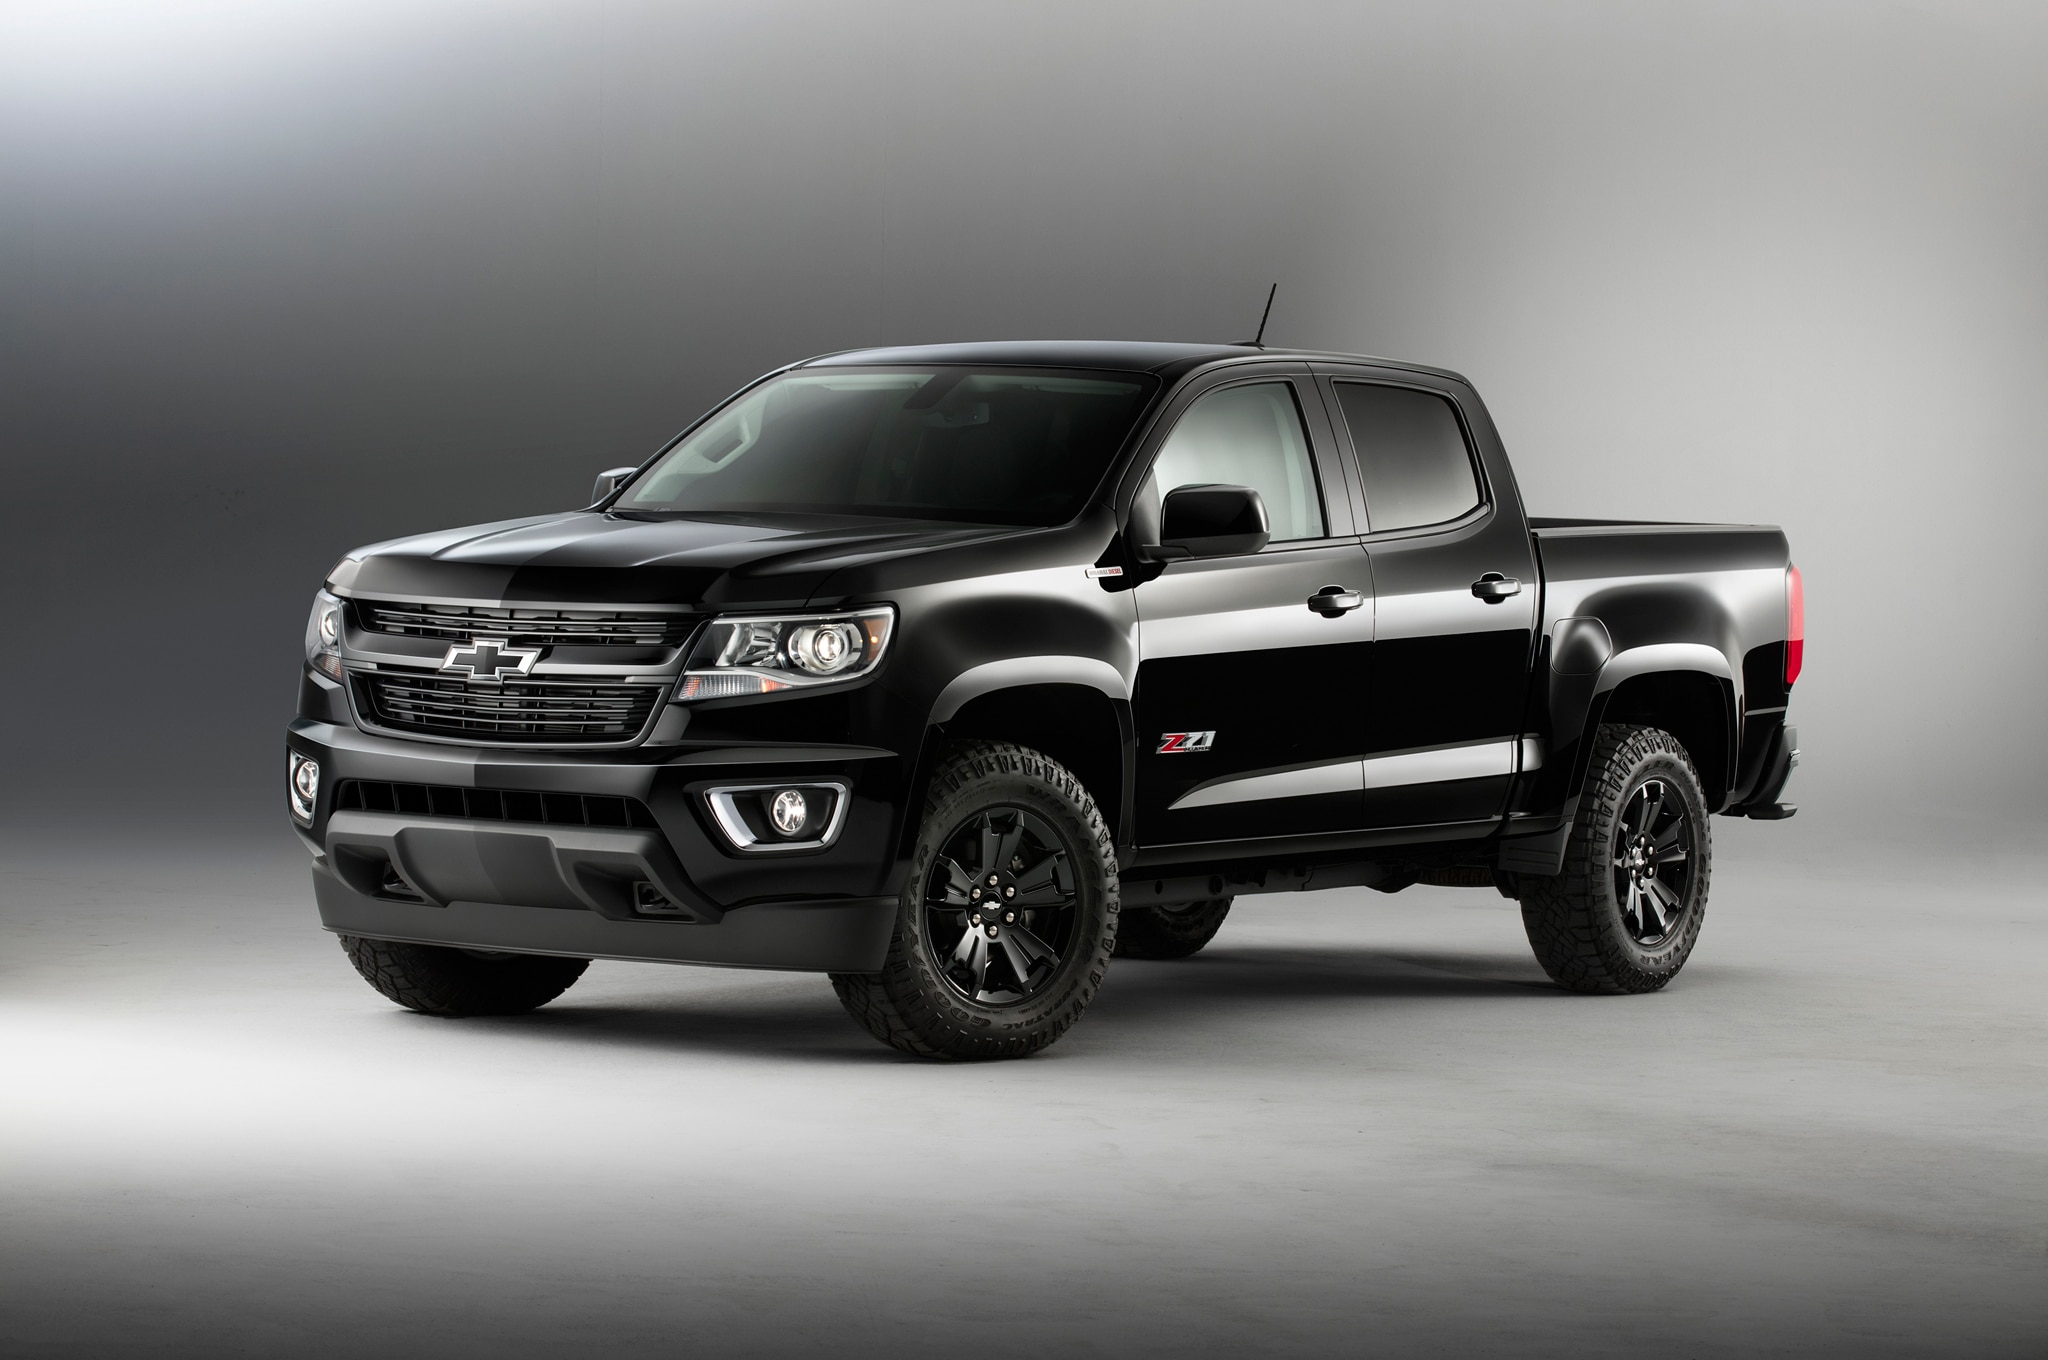 2016 Chevrolet Colorado Z71 Midnight Edition front three quarter